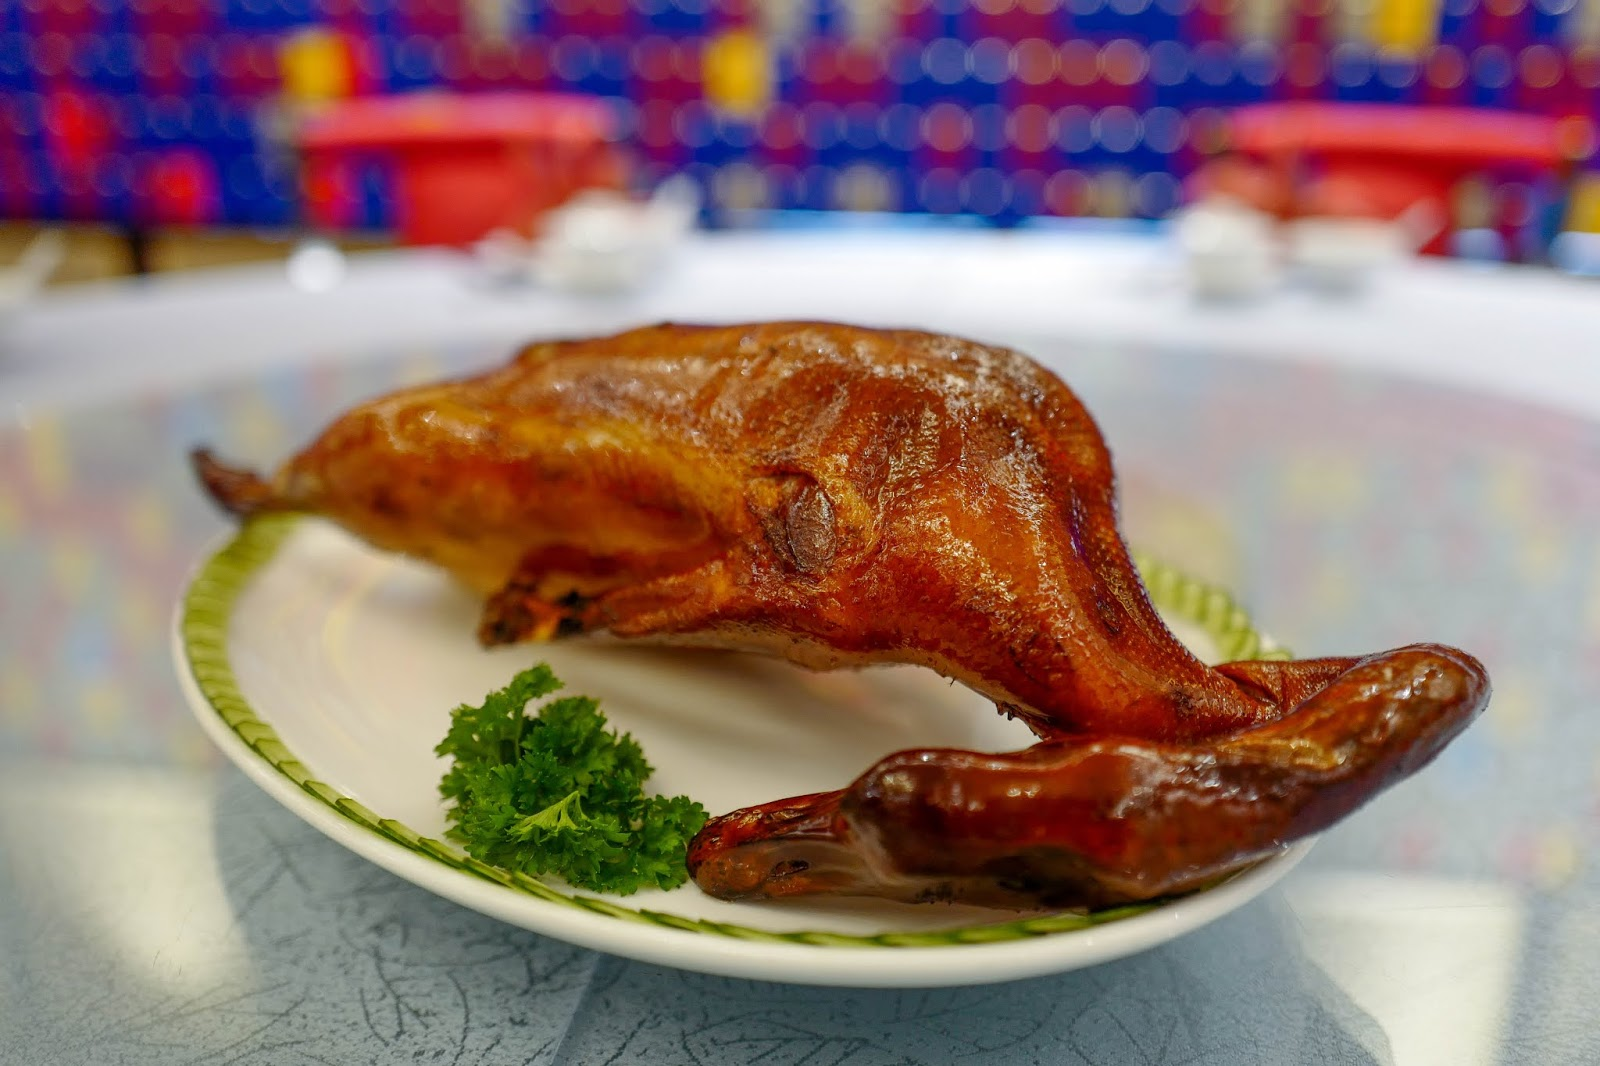 zuan yuan, one world hotel: traditional roast goose